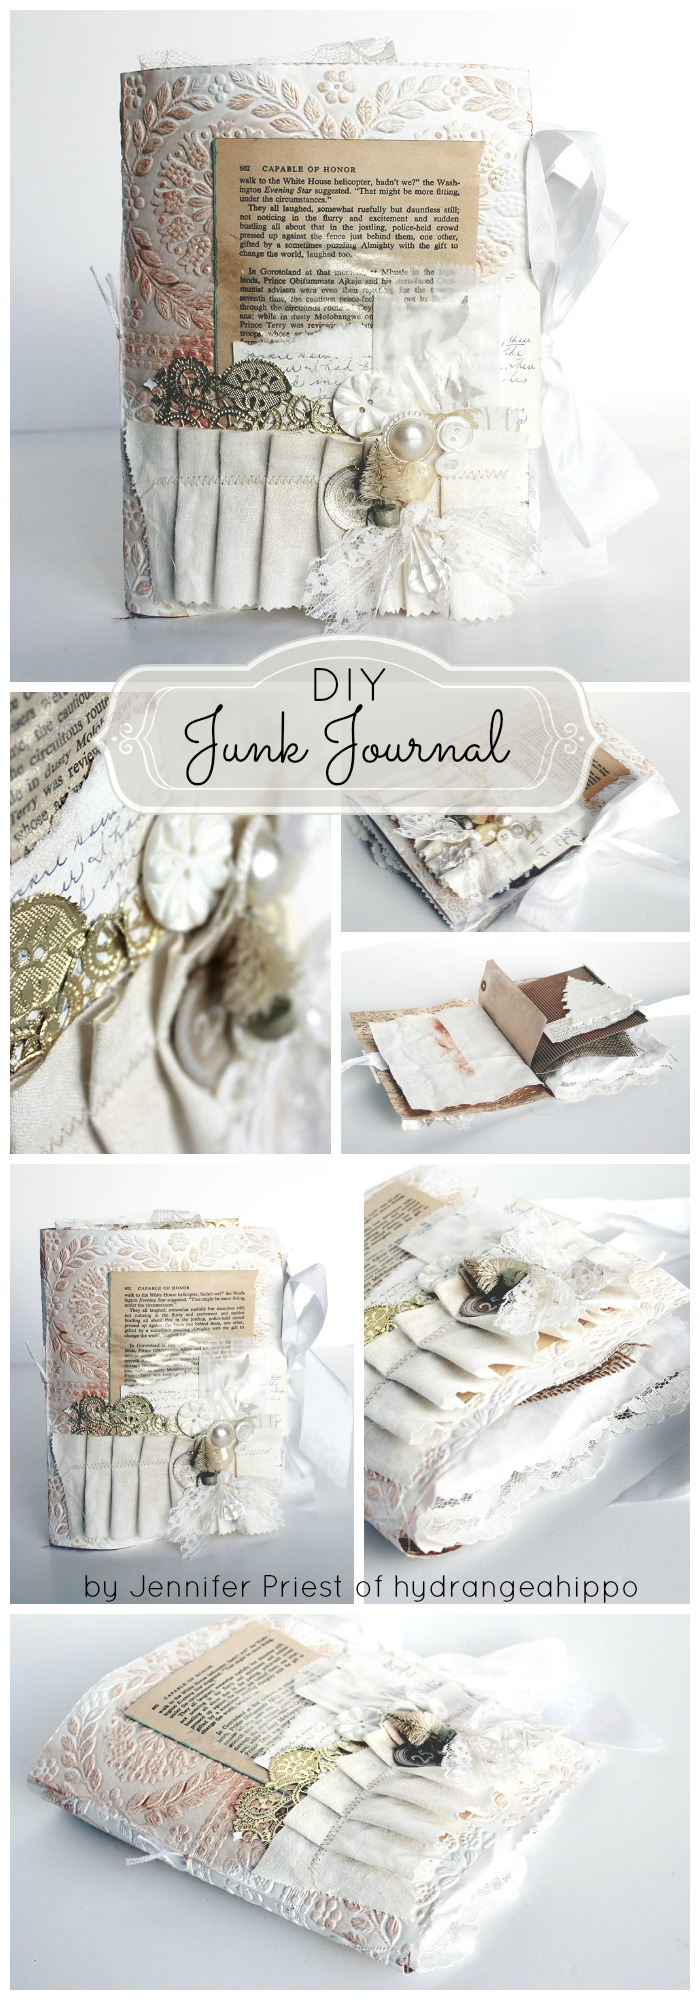 Junk Journal by Jennifer Priest COLLAGE